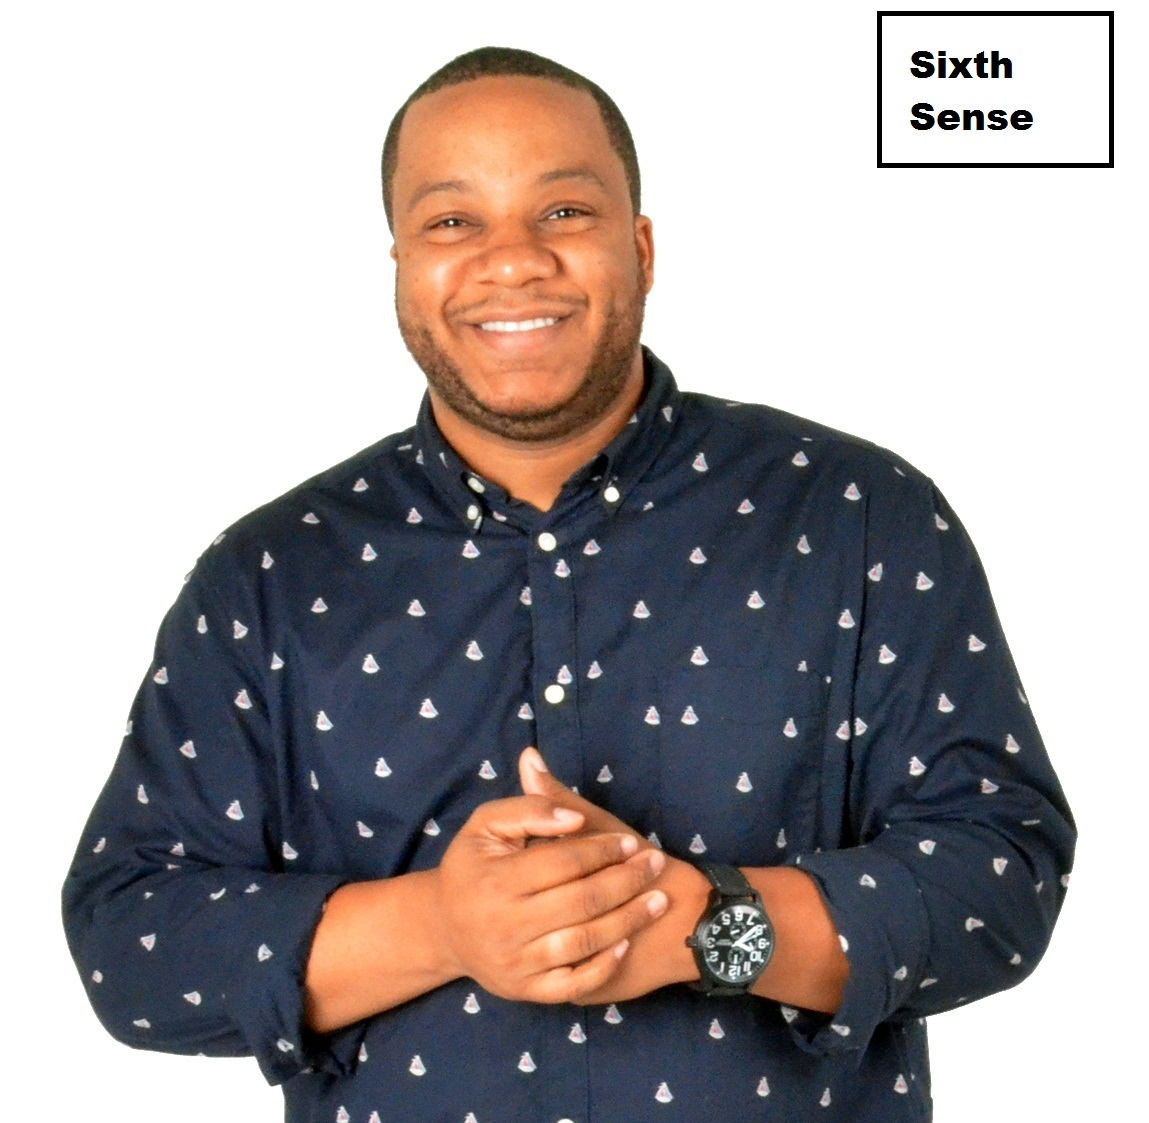 djsixthsense new